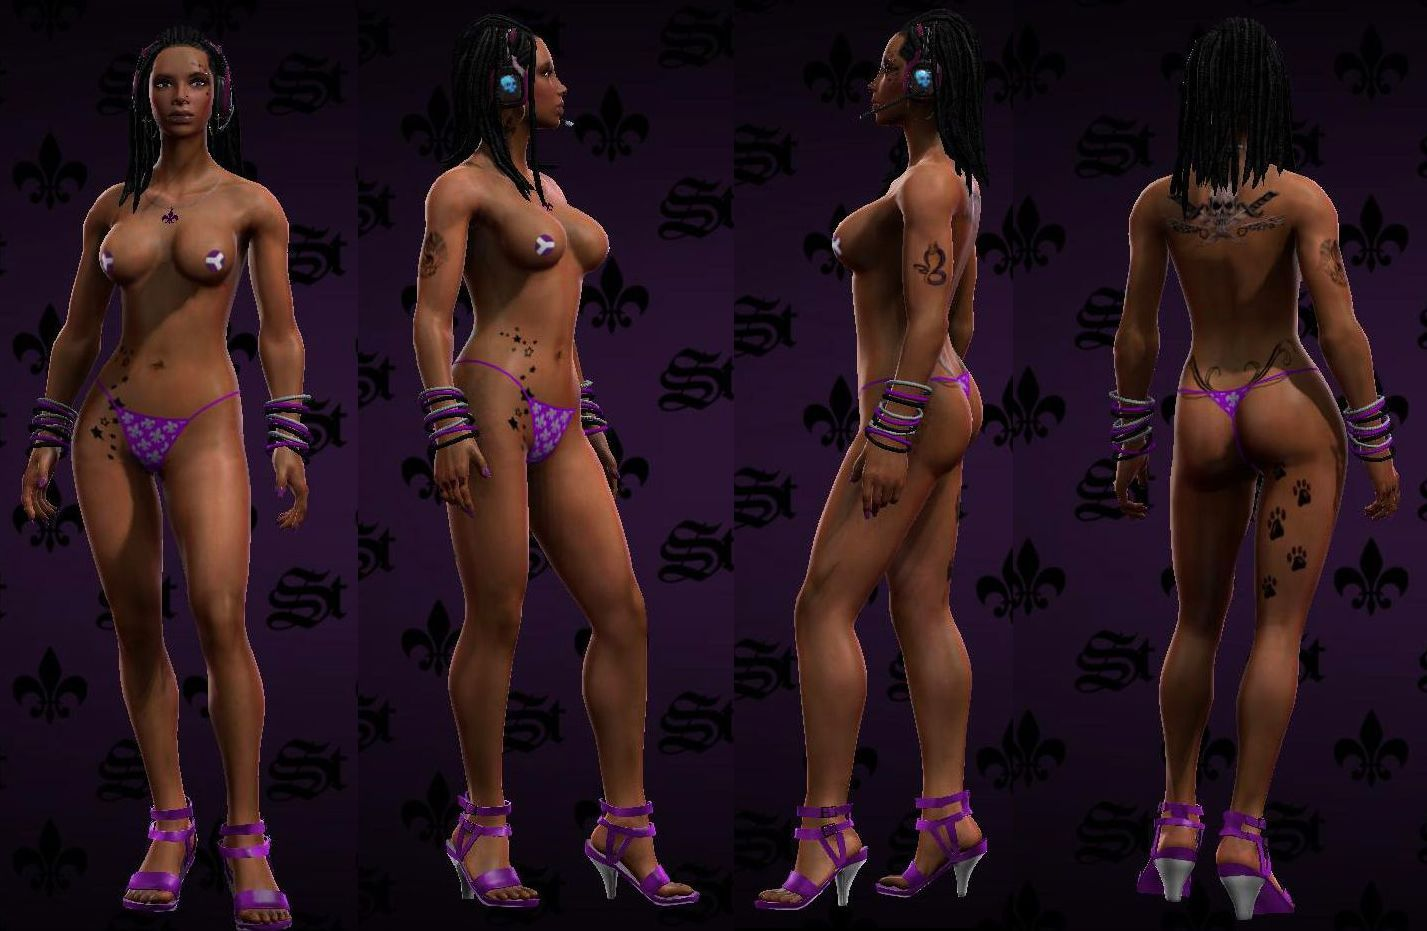 Hot naked saints row 4 porno scenes